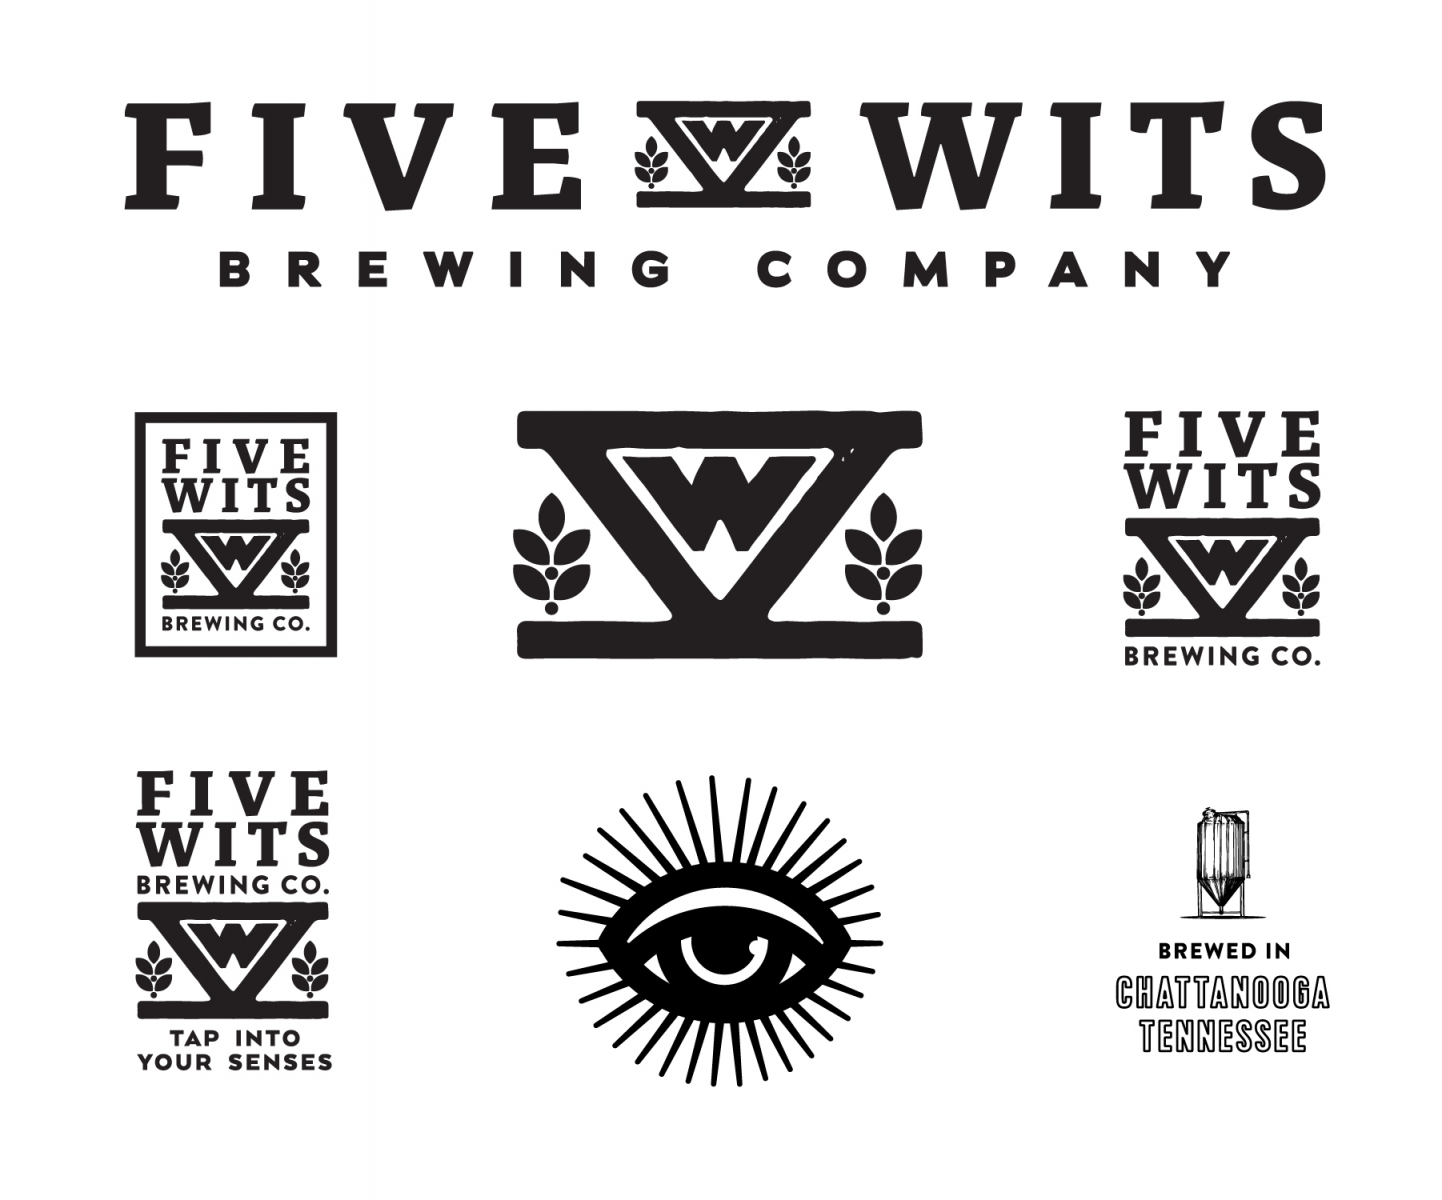 Five Wits Brewing Company